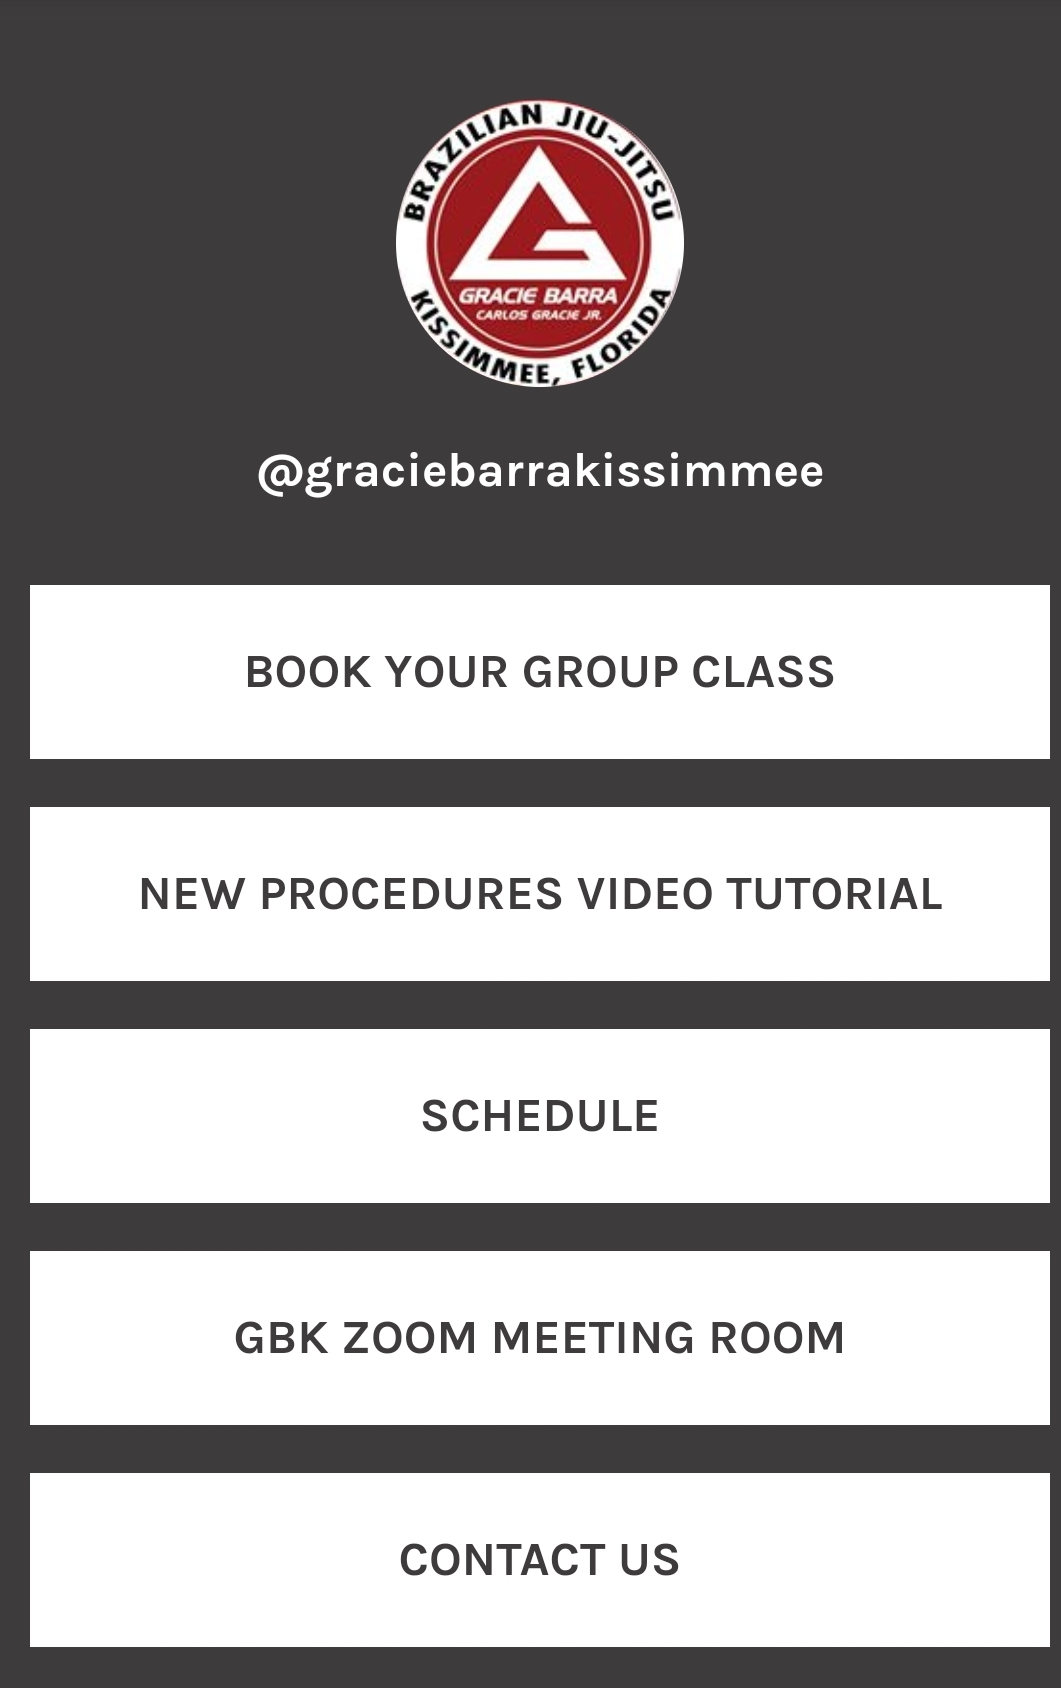 SCHEDULE, CLASS-BOOKING INSTRUCTIONS AND GUIDELINES!